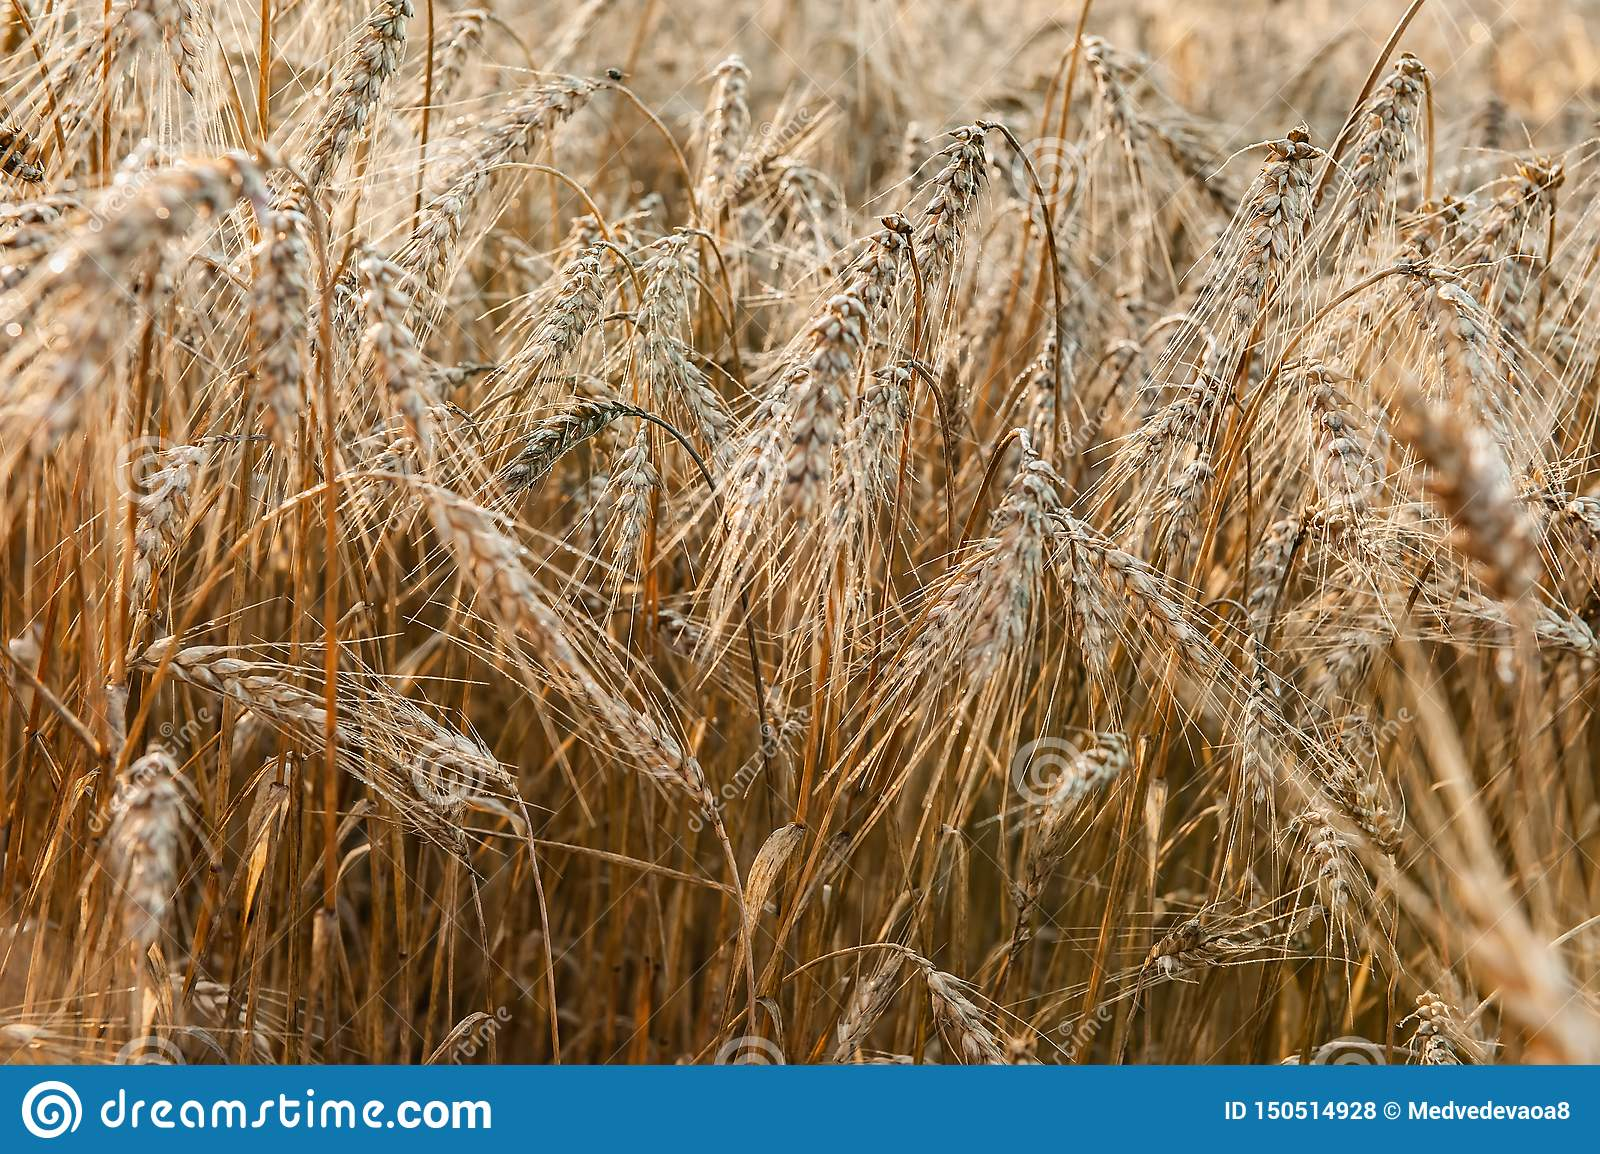 Wheat field on a Sunny day. Golden ears of wheat. Whole grains close-up. The idea of a rich harvest. Label design